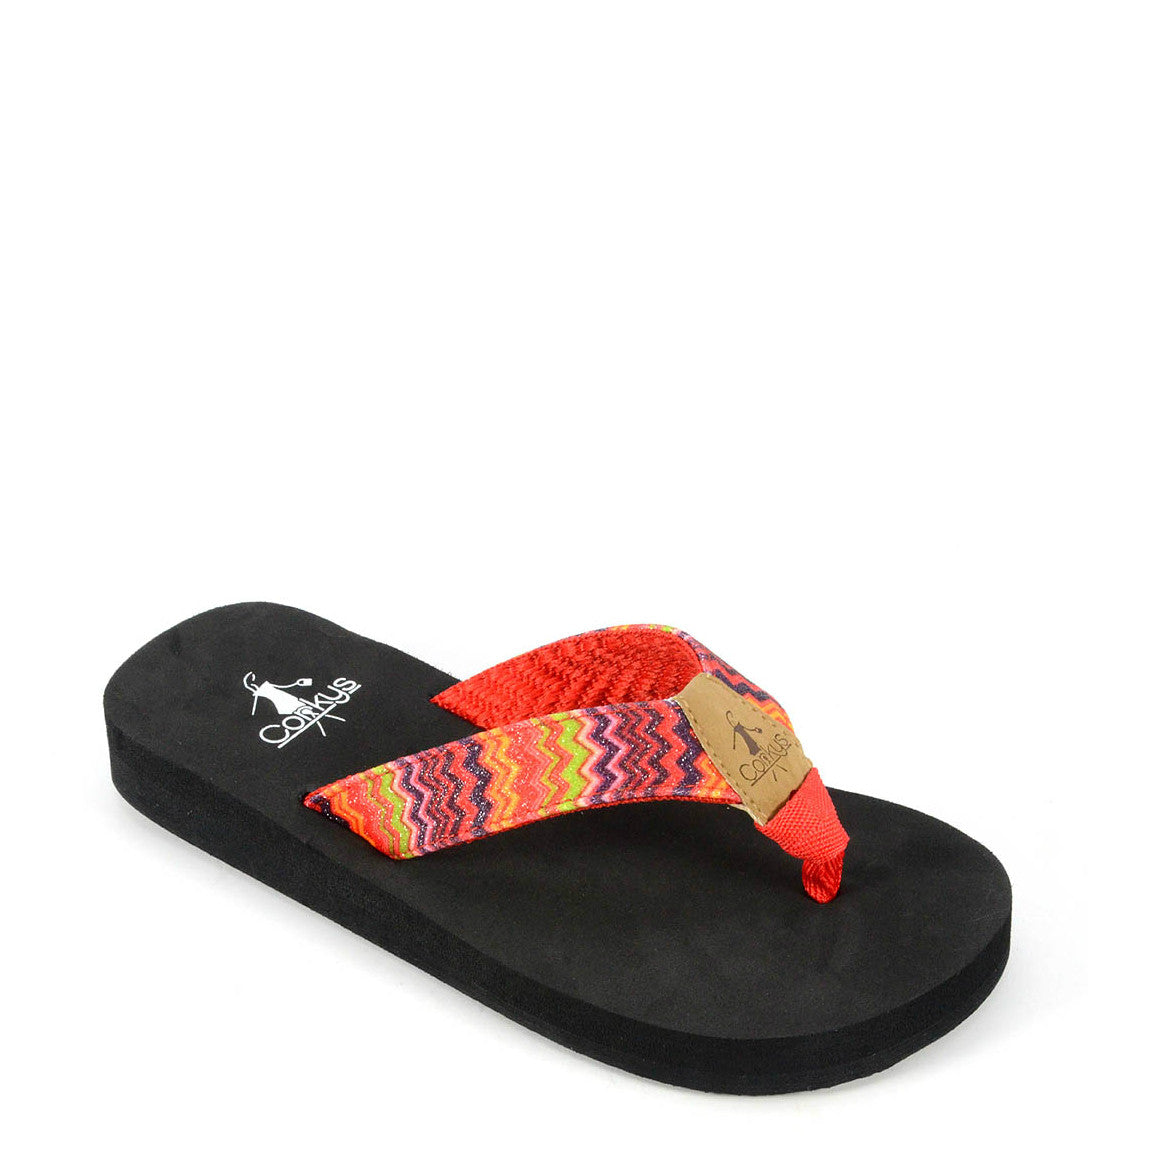 Corkys Kid's Fish Flip Flop - Red Multi 20-8078